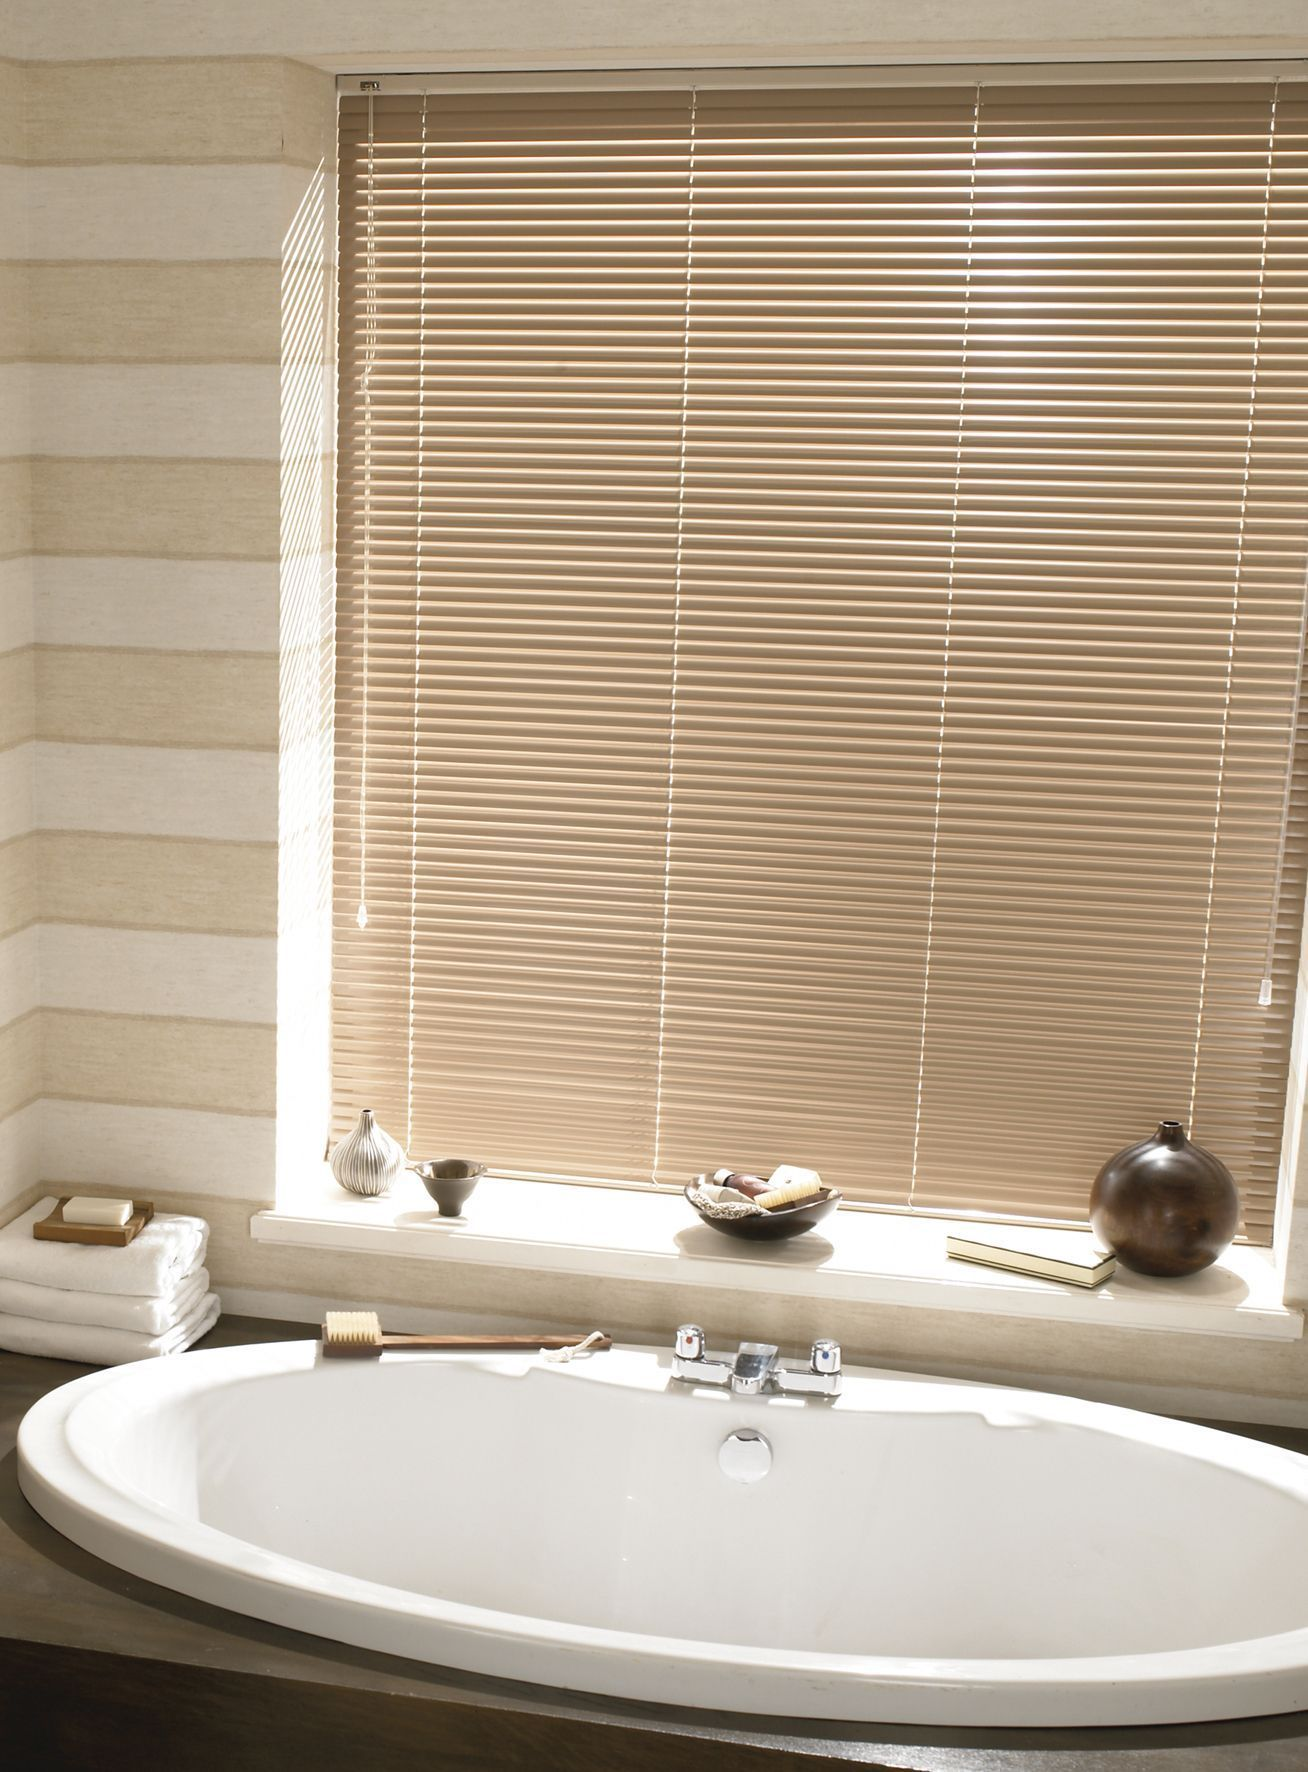 Venetian Blinds Bathroom Frenchblinds Plantationblinds Blinds Design Cheap Blinds House Blinds